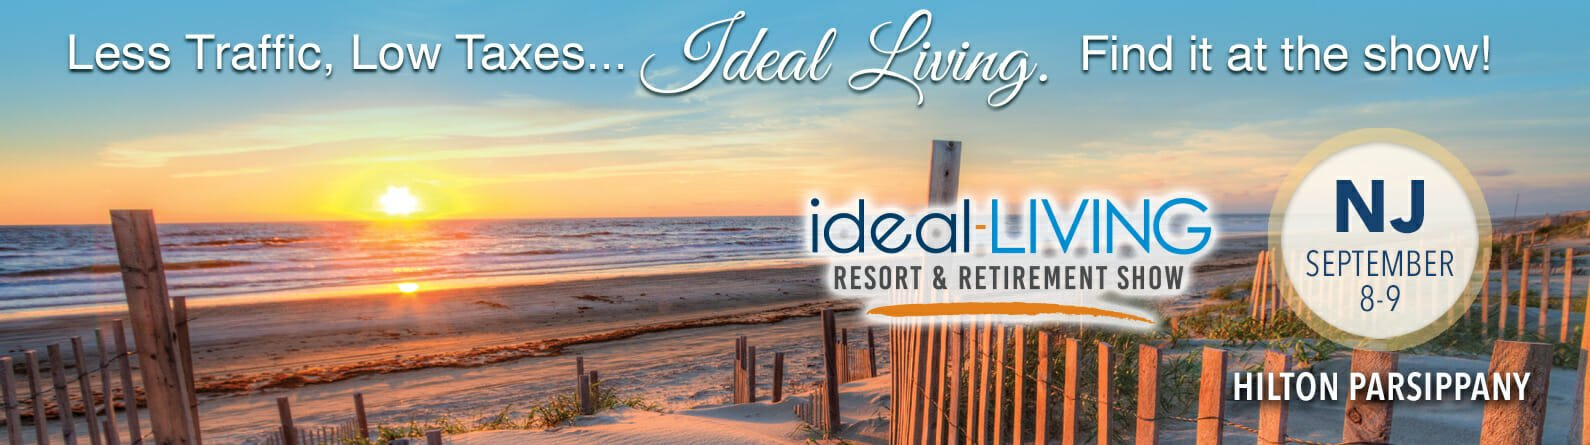 the ideal-LIVING Resort and Retirement Show in Parsippany, NJ